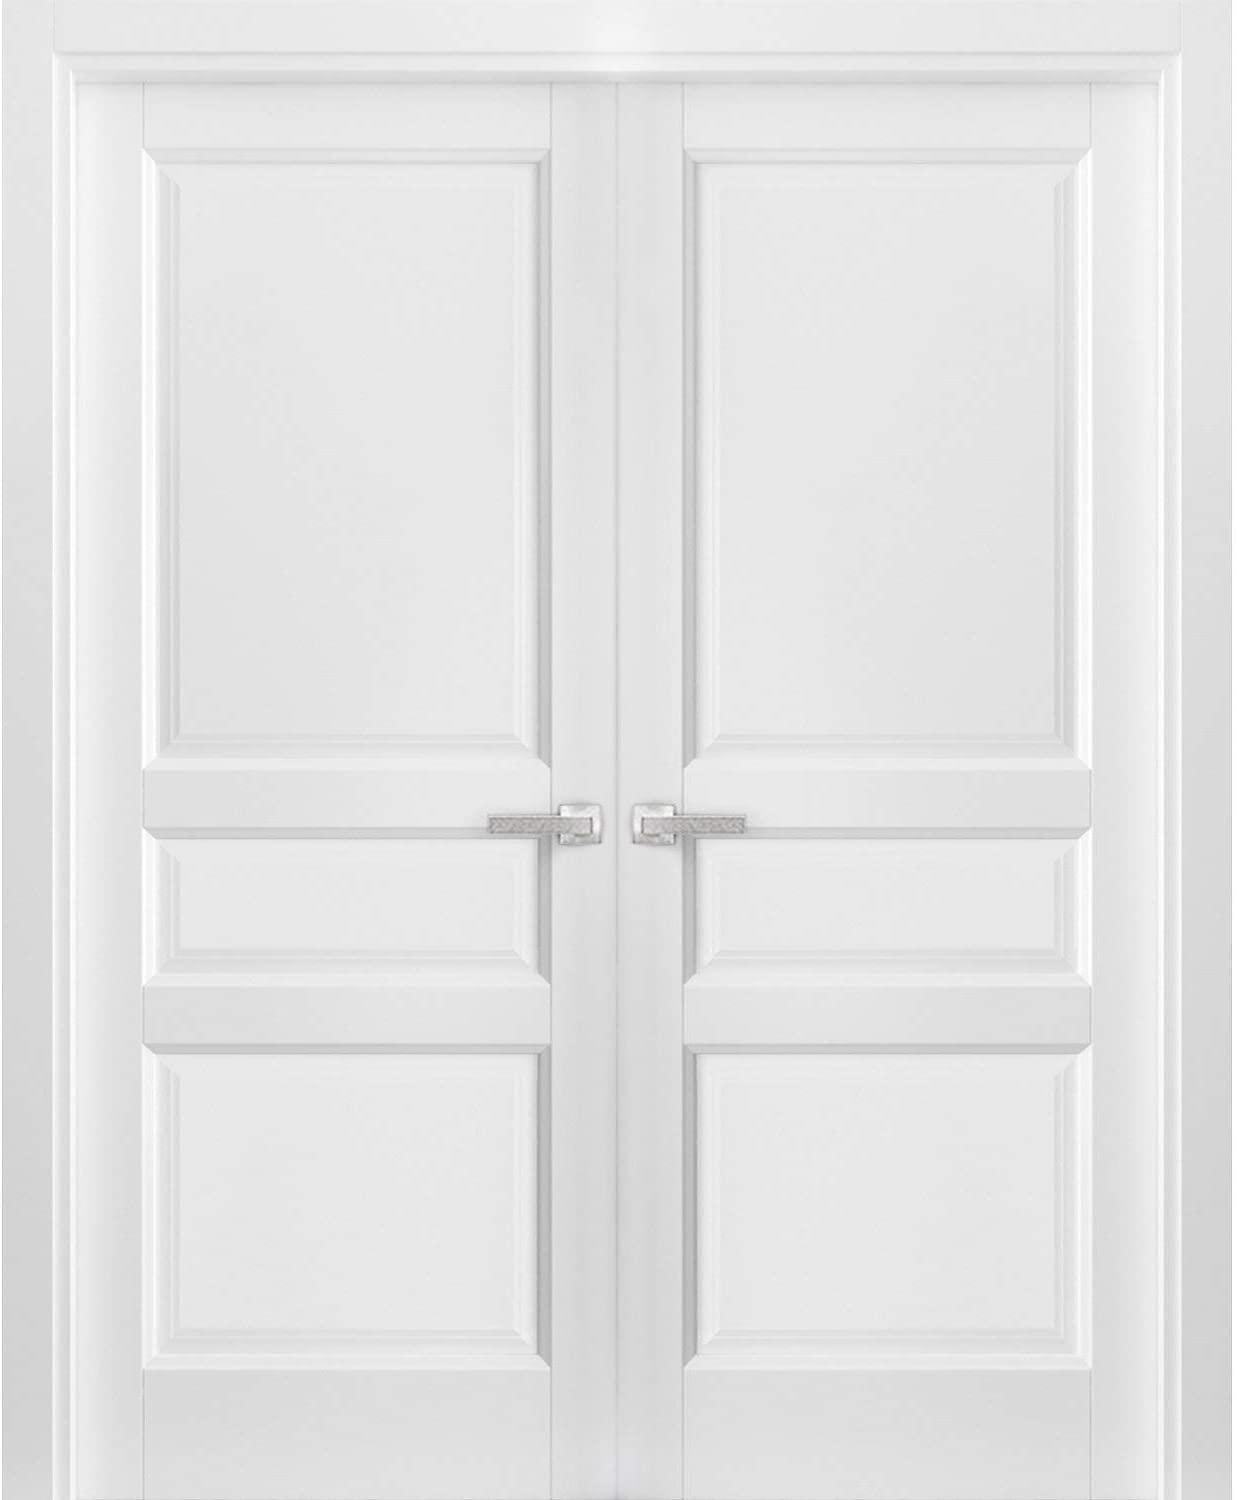 French Double Panel Kansas City Mall In stock Solid Doors 36 84 Lucia x 31 Hardware with